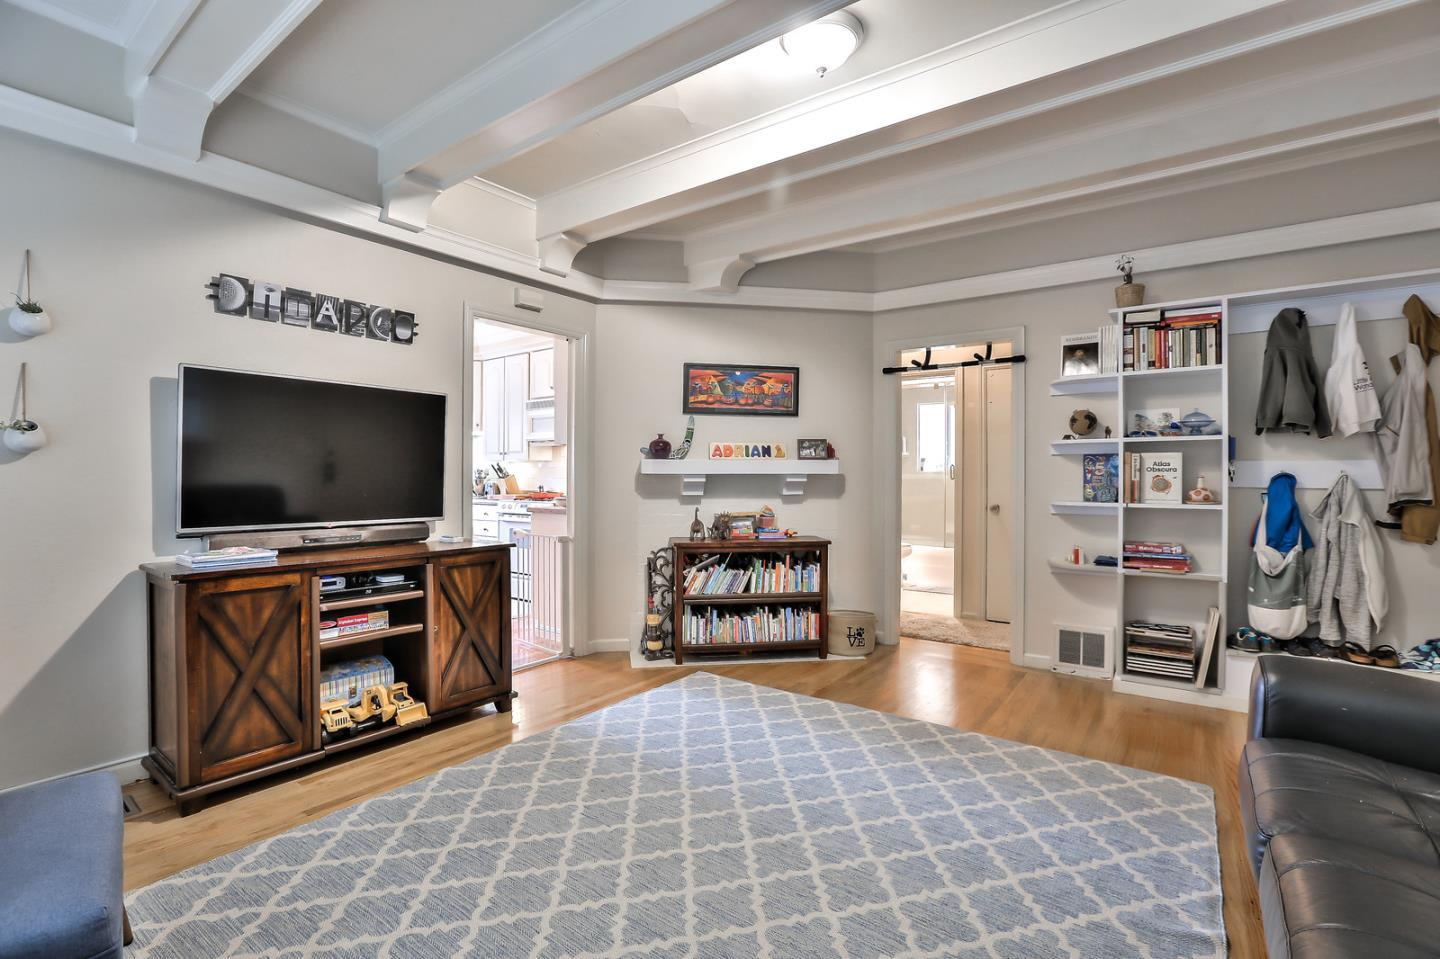 704/704A Howard AVE preview